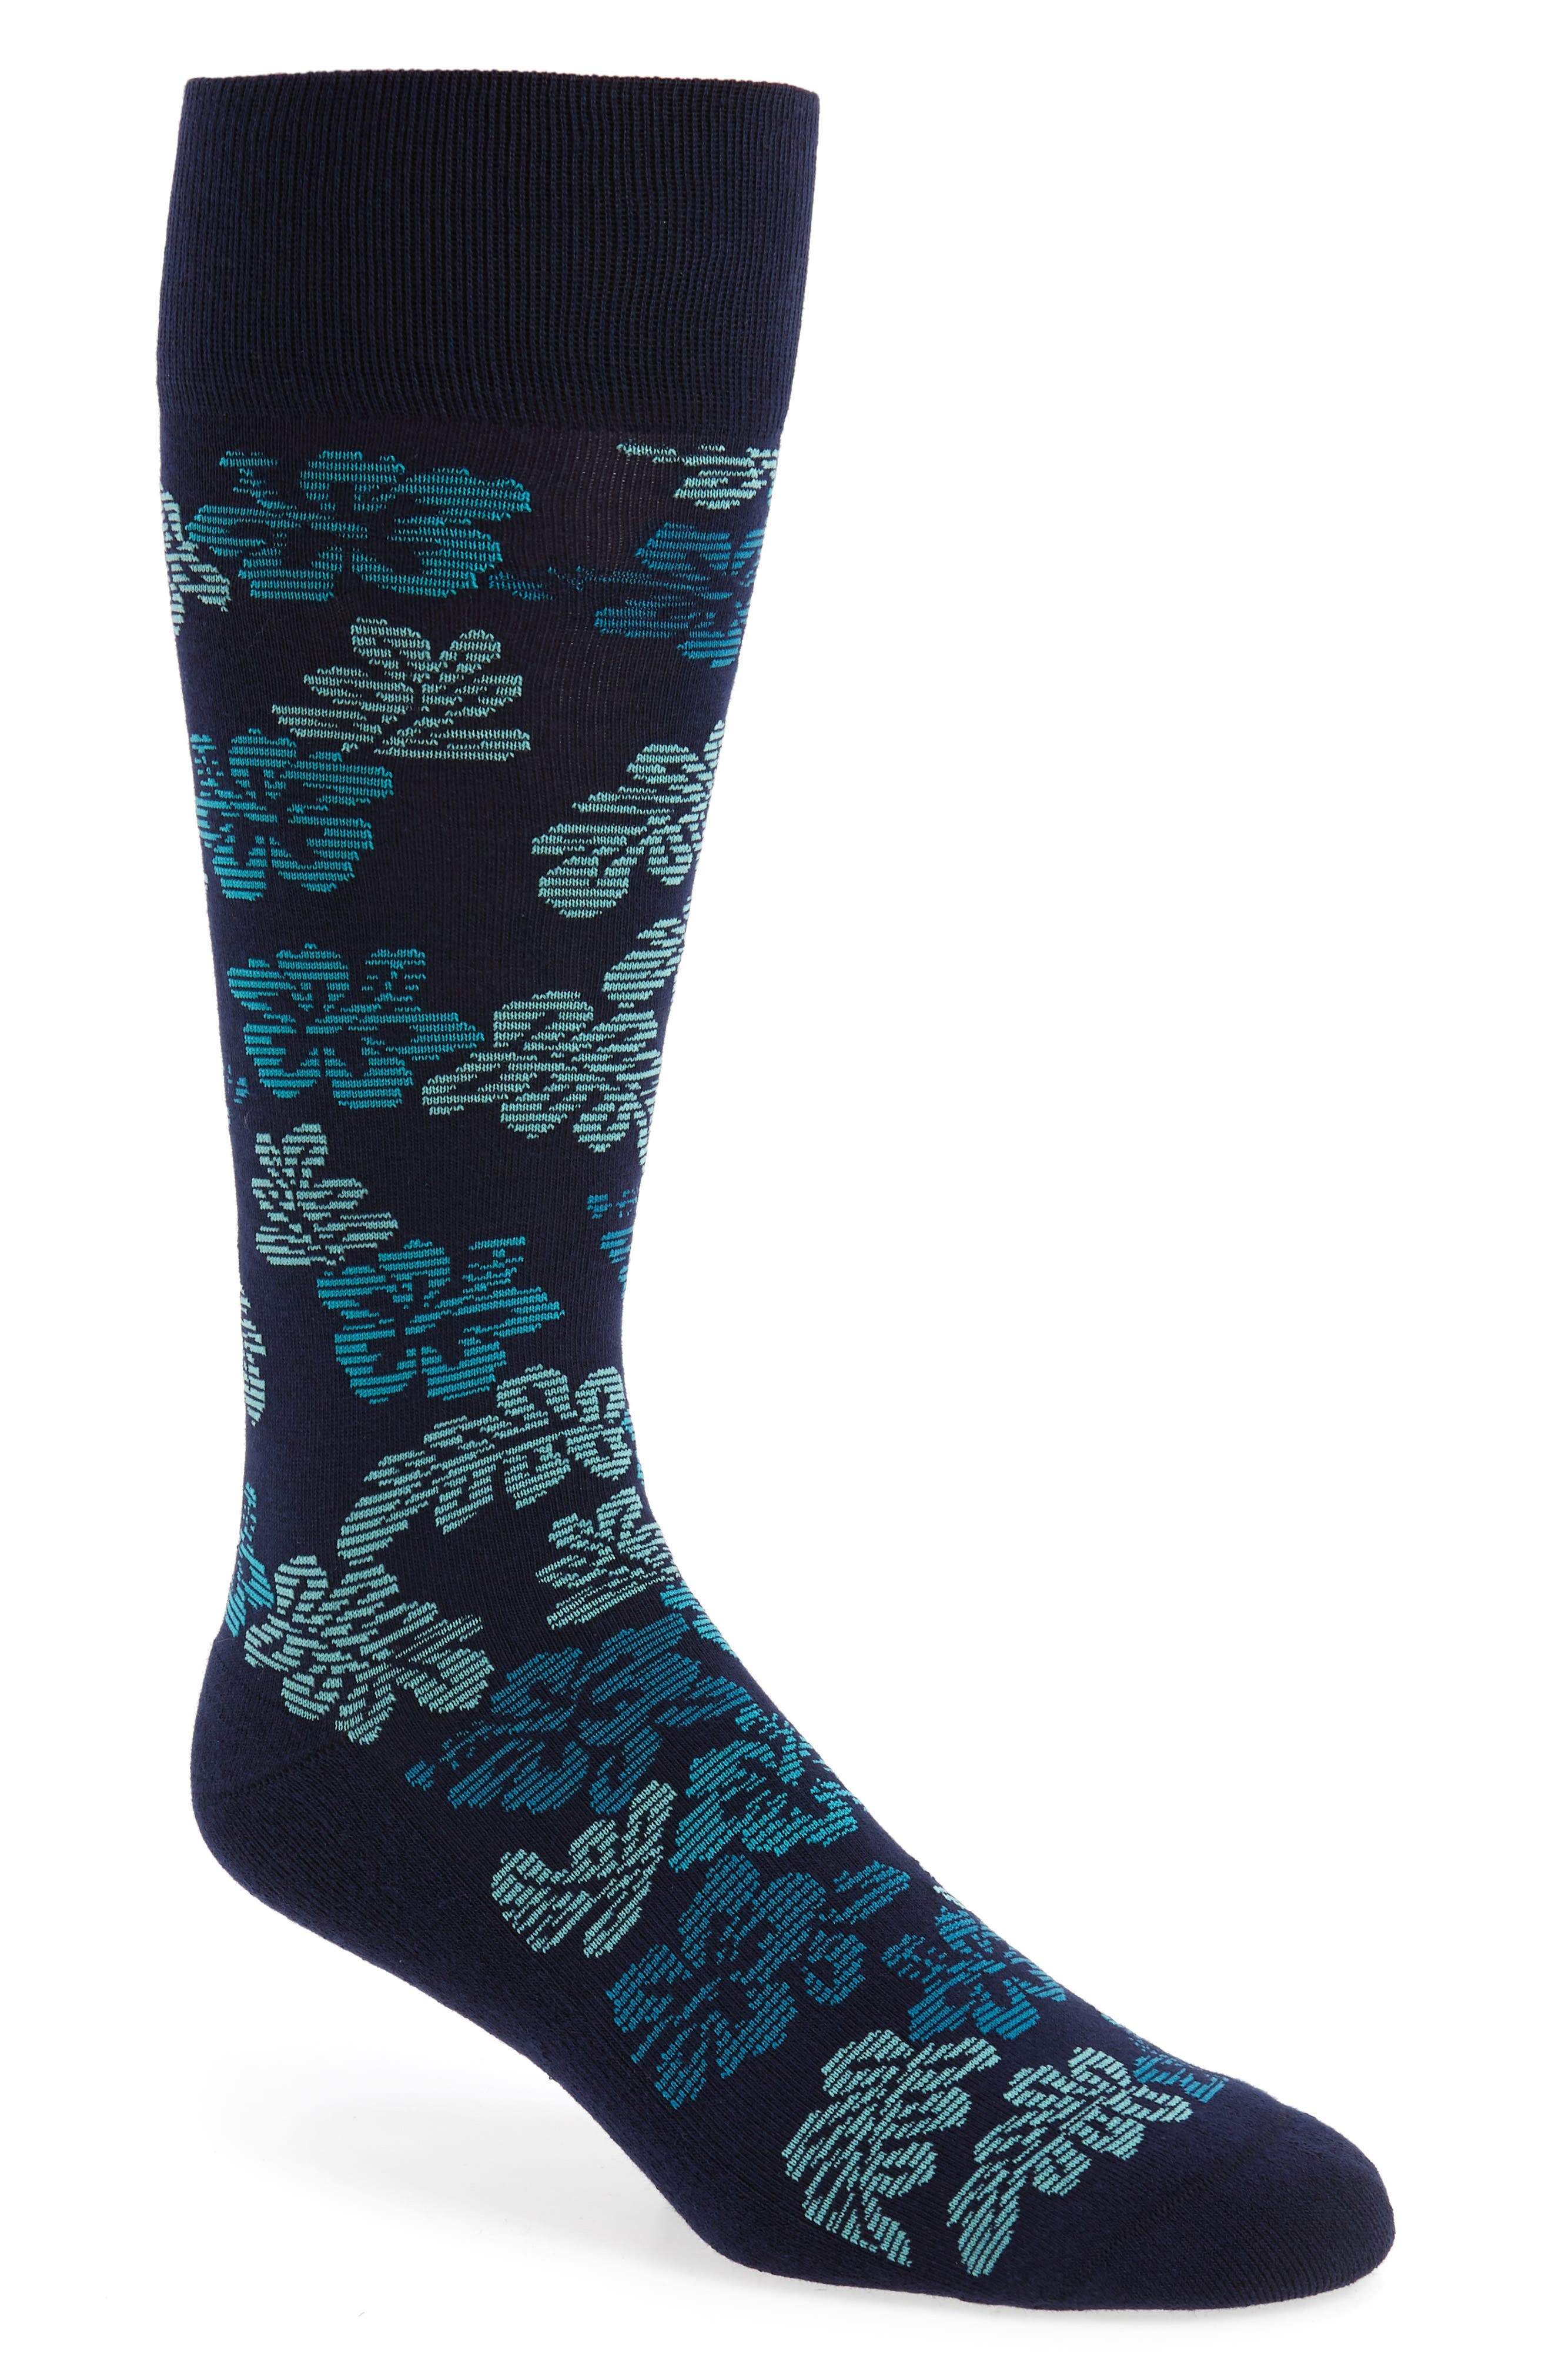 Hibiscus Vibe Socks,                         Main,                         color, Navy/ Teal